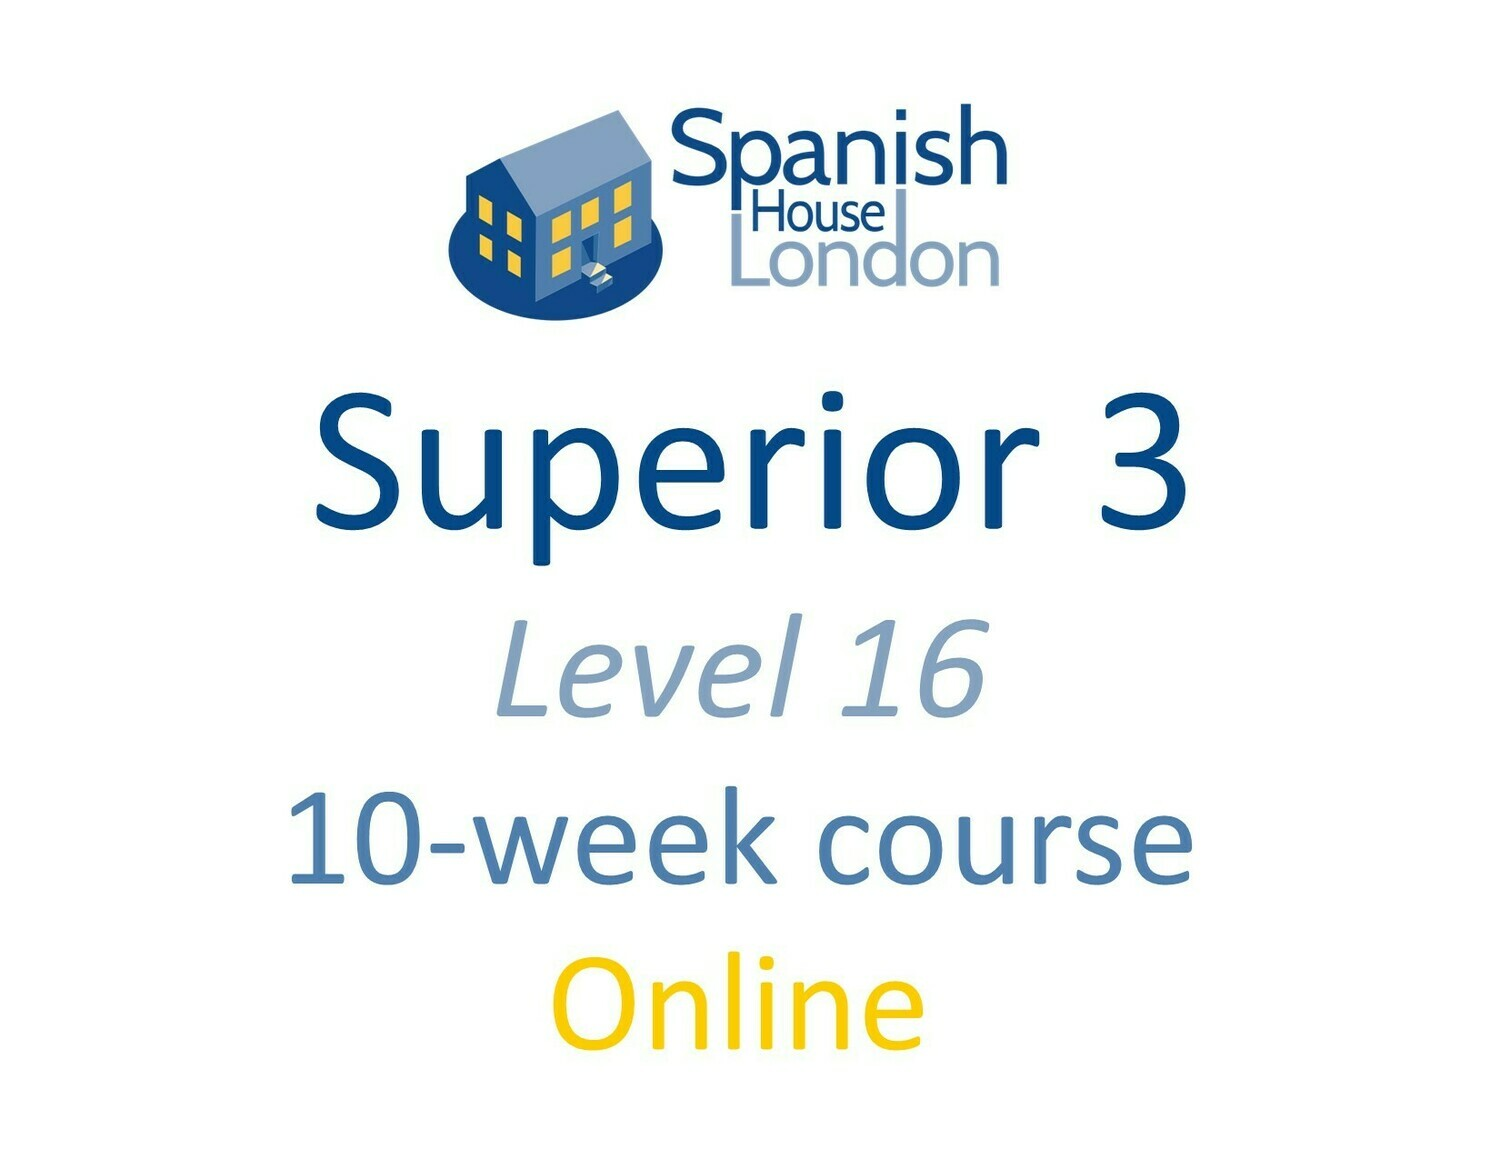 Superior 3 Course starting on 8th June at 7.30pm